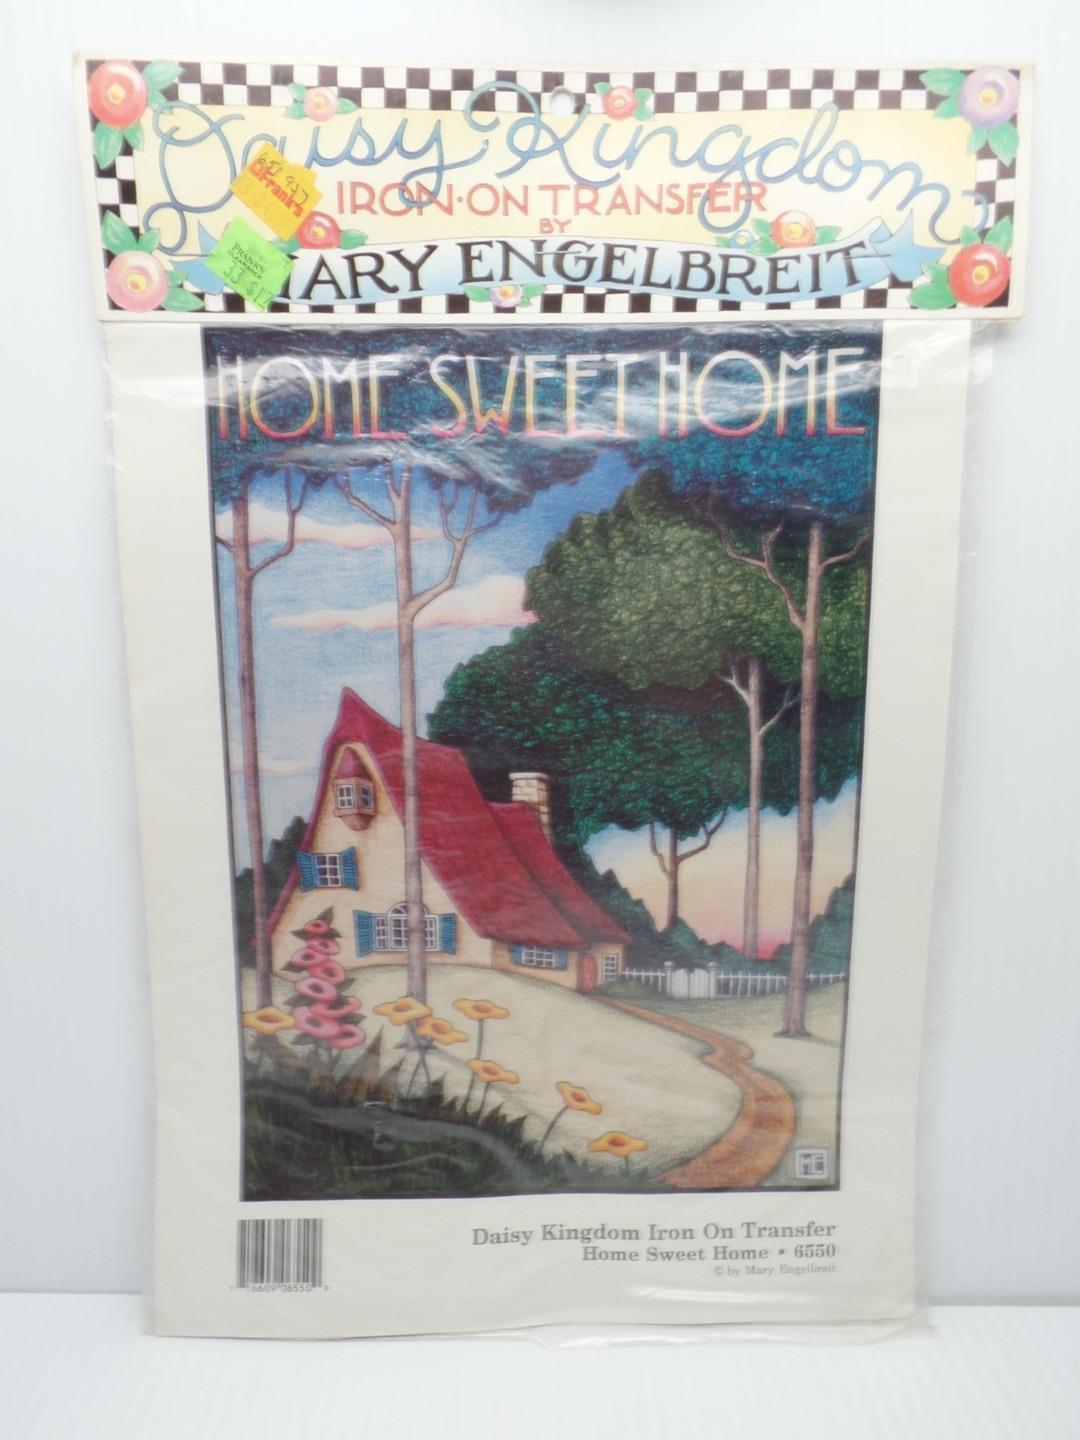 Iron On Transfer Home Sweet Home Mary Engelbreit 6550 Daisy Kingdom 1990